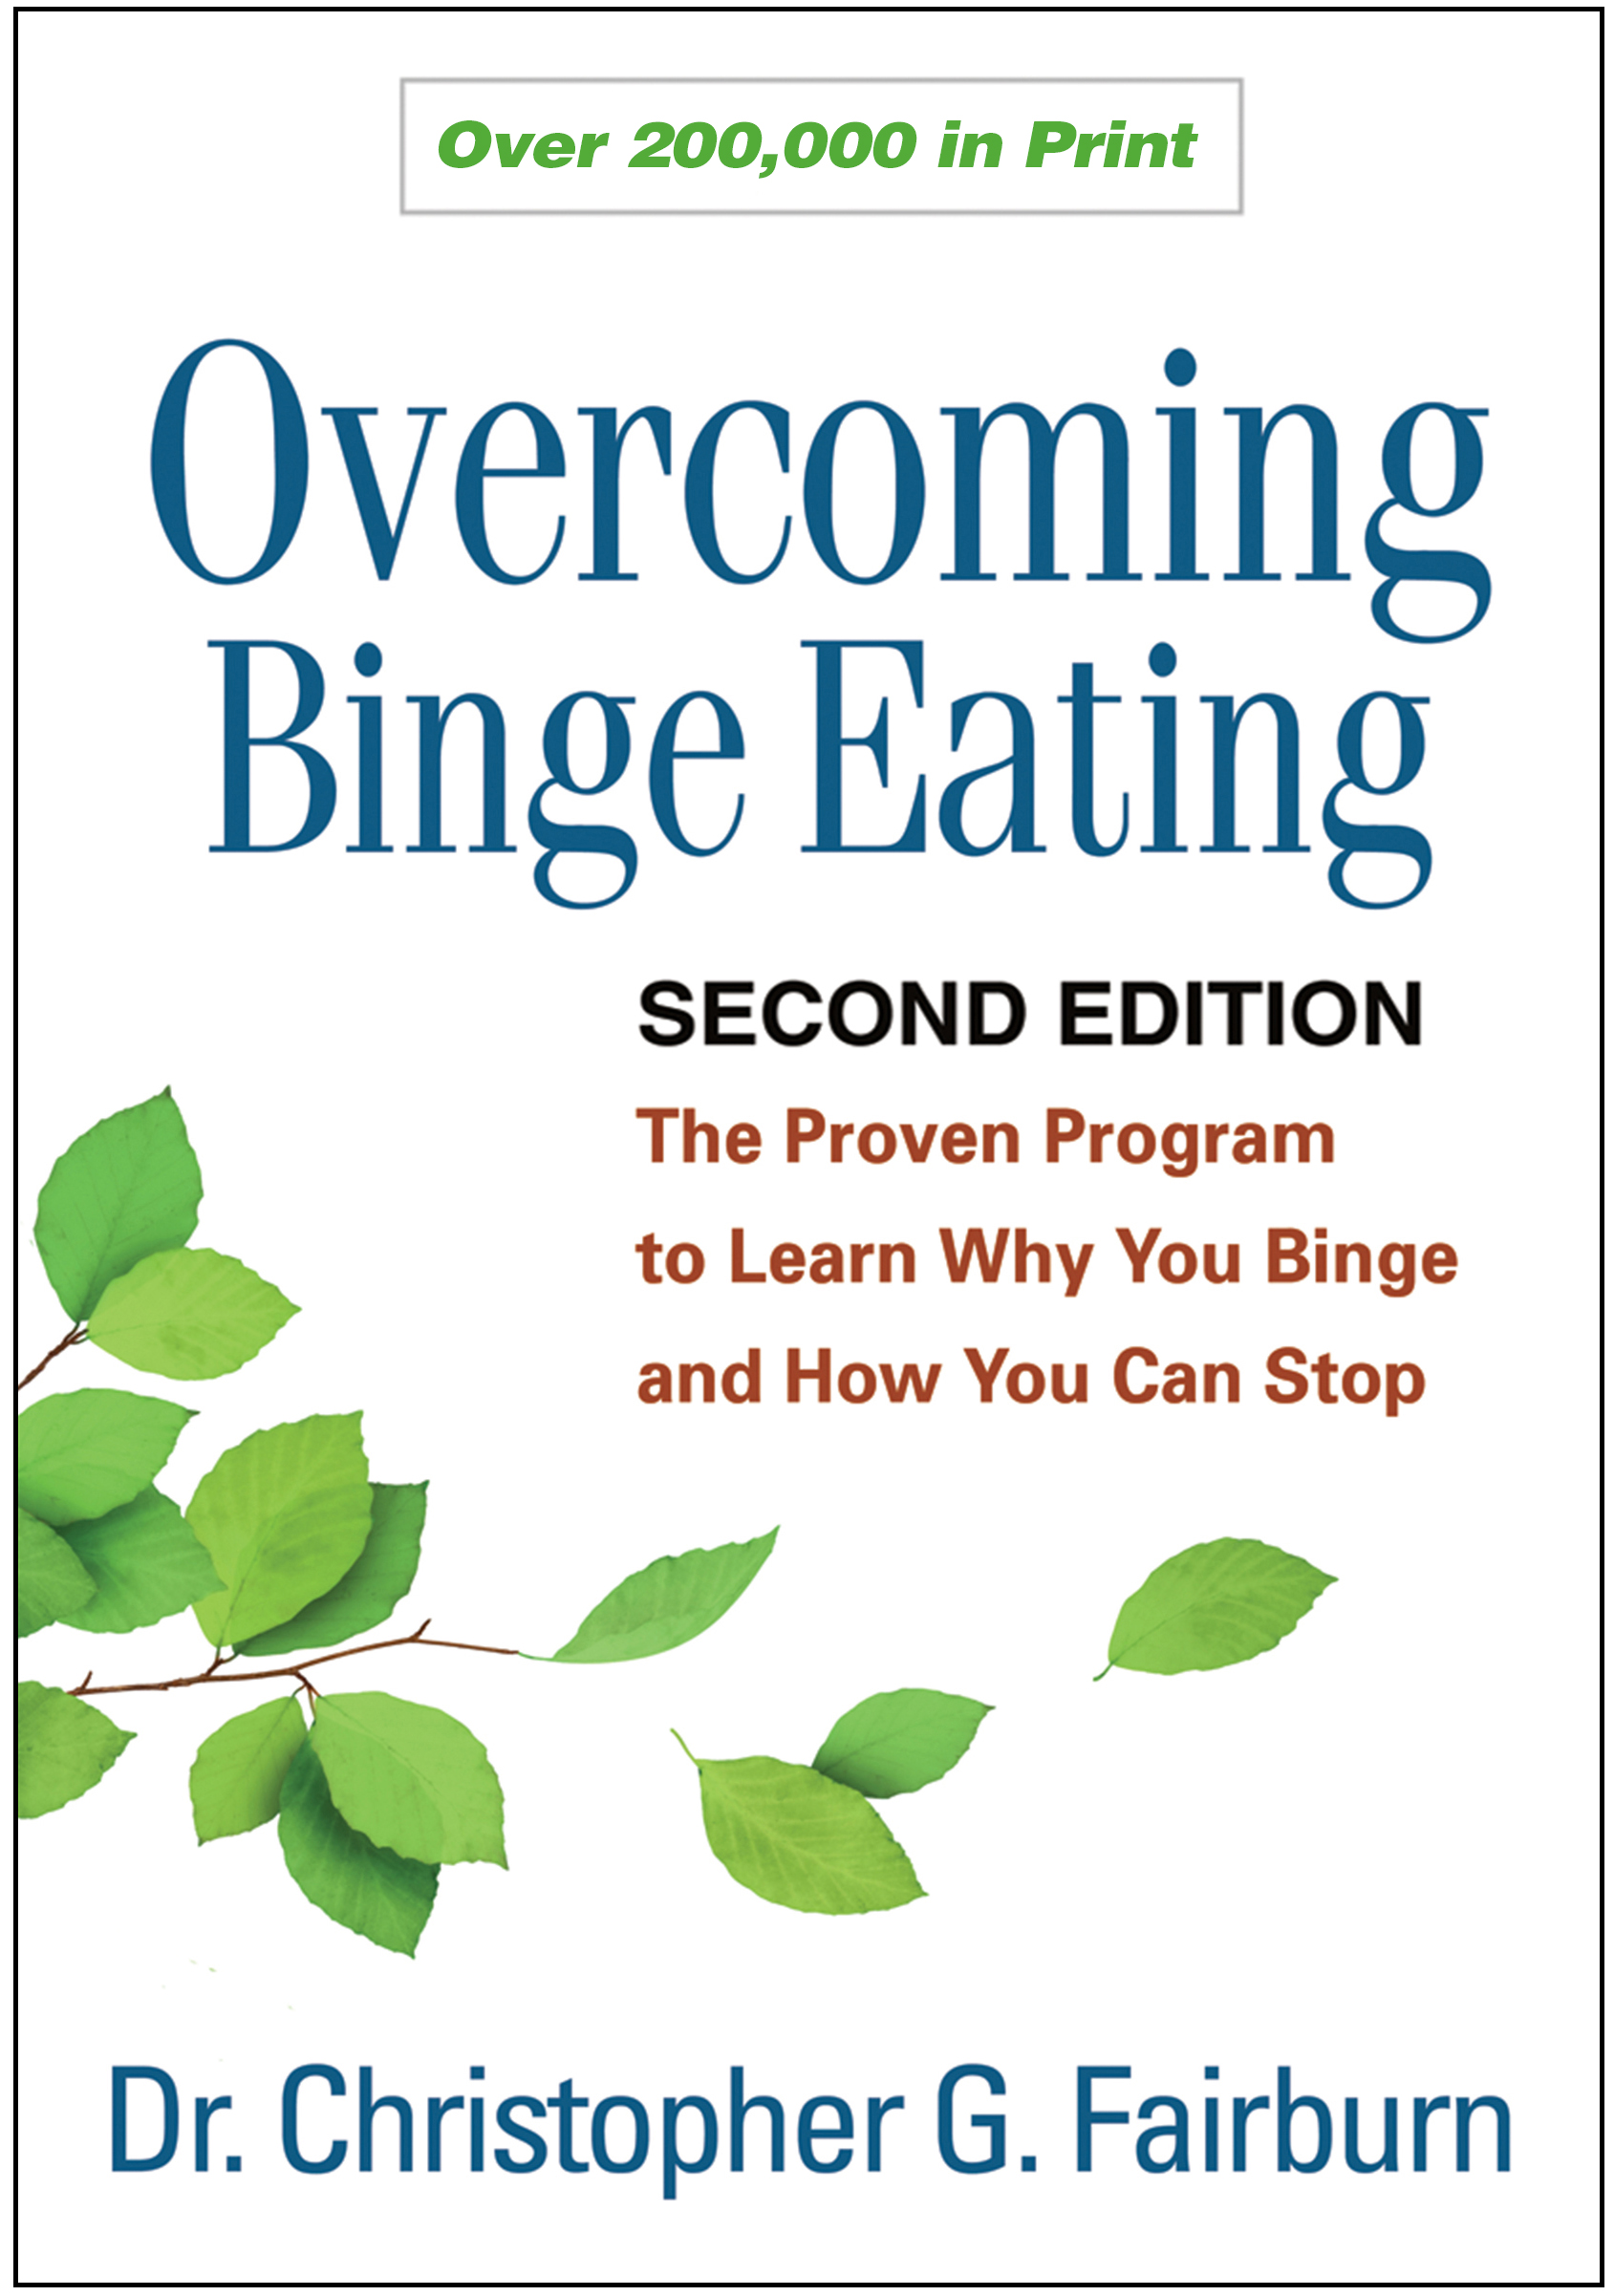 Overcoming Binge Eating: The Proven Program to Learn Why You Binge and How You Can Stop book cover